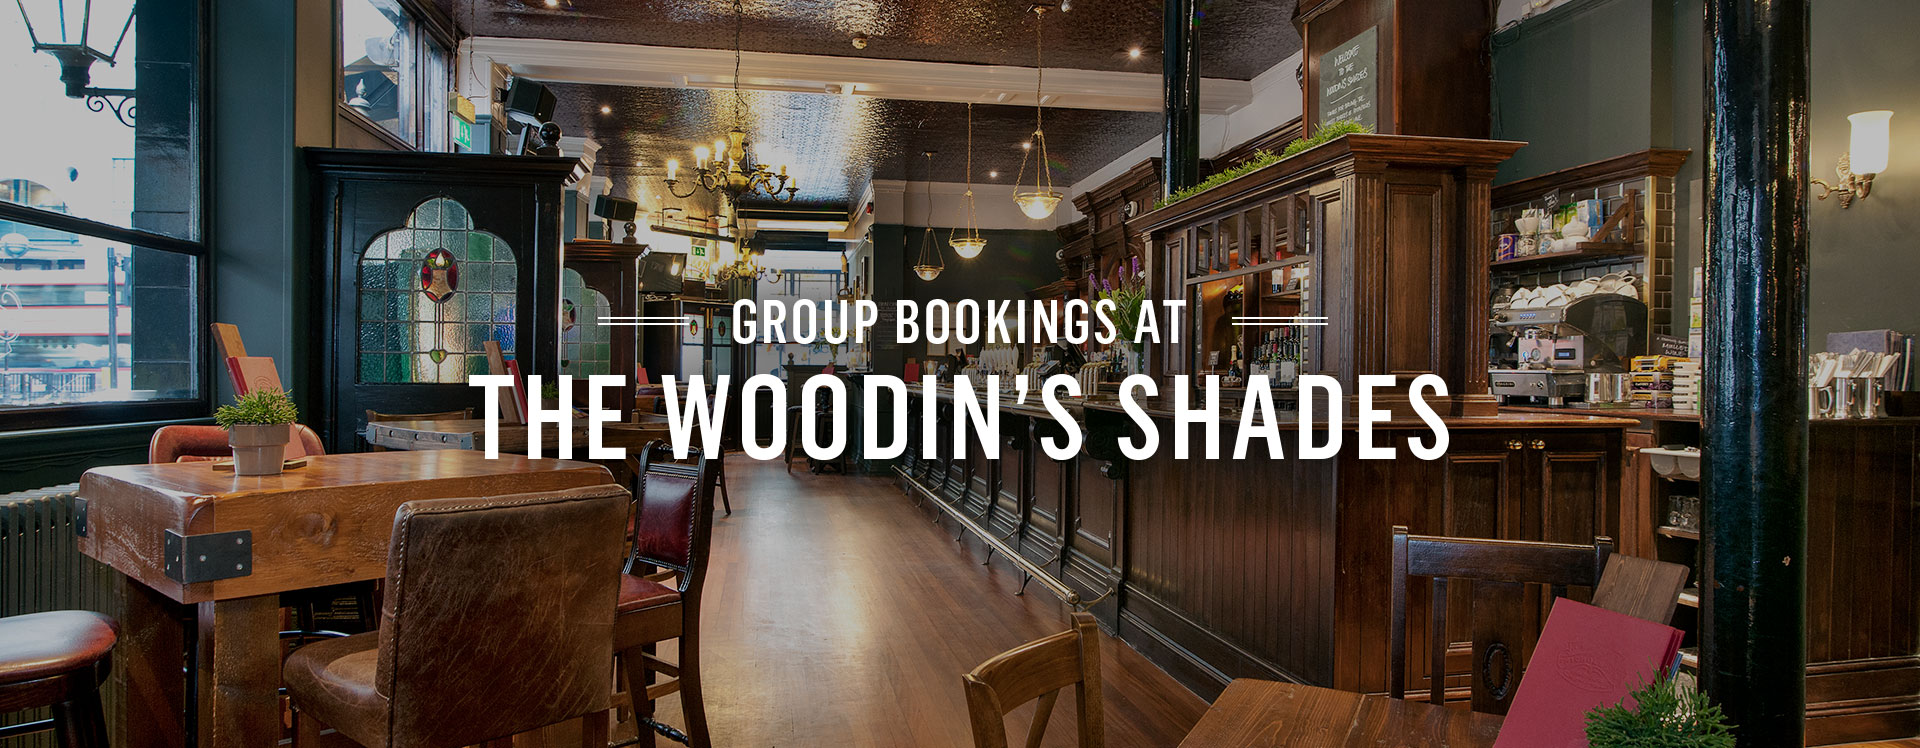 Group Bookings at The Woodins Shades